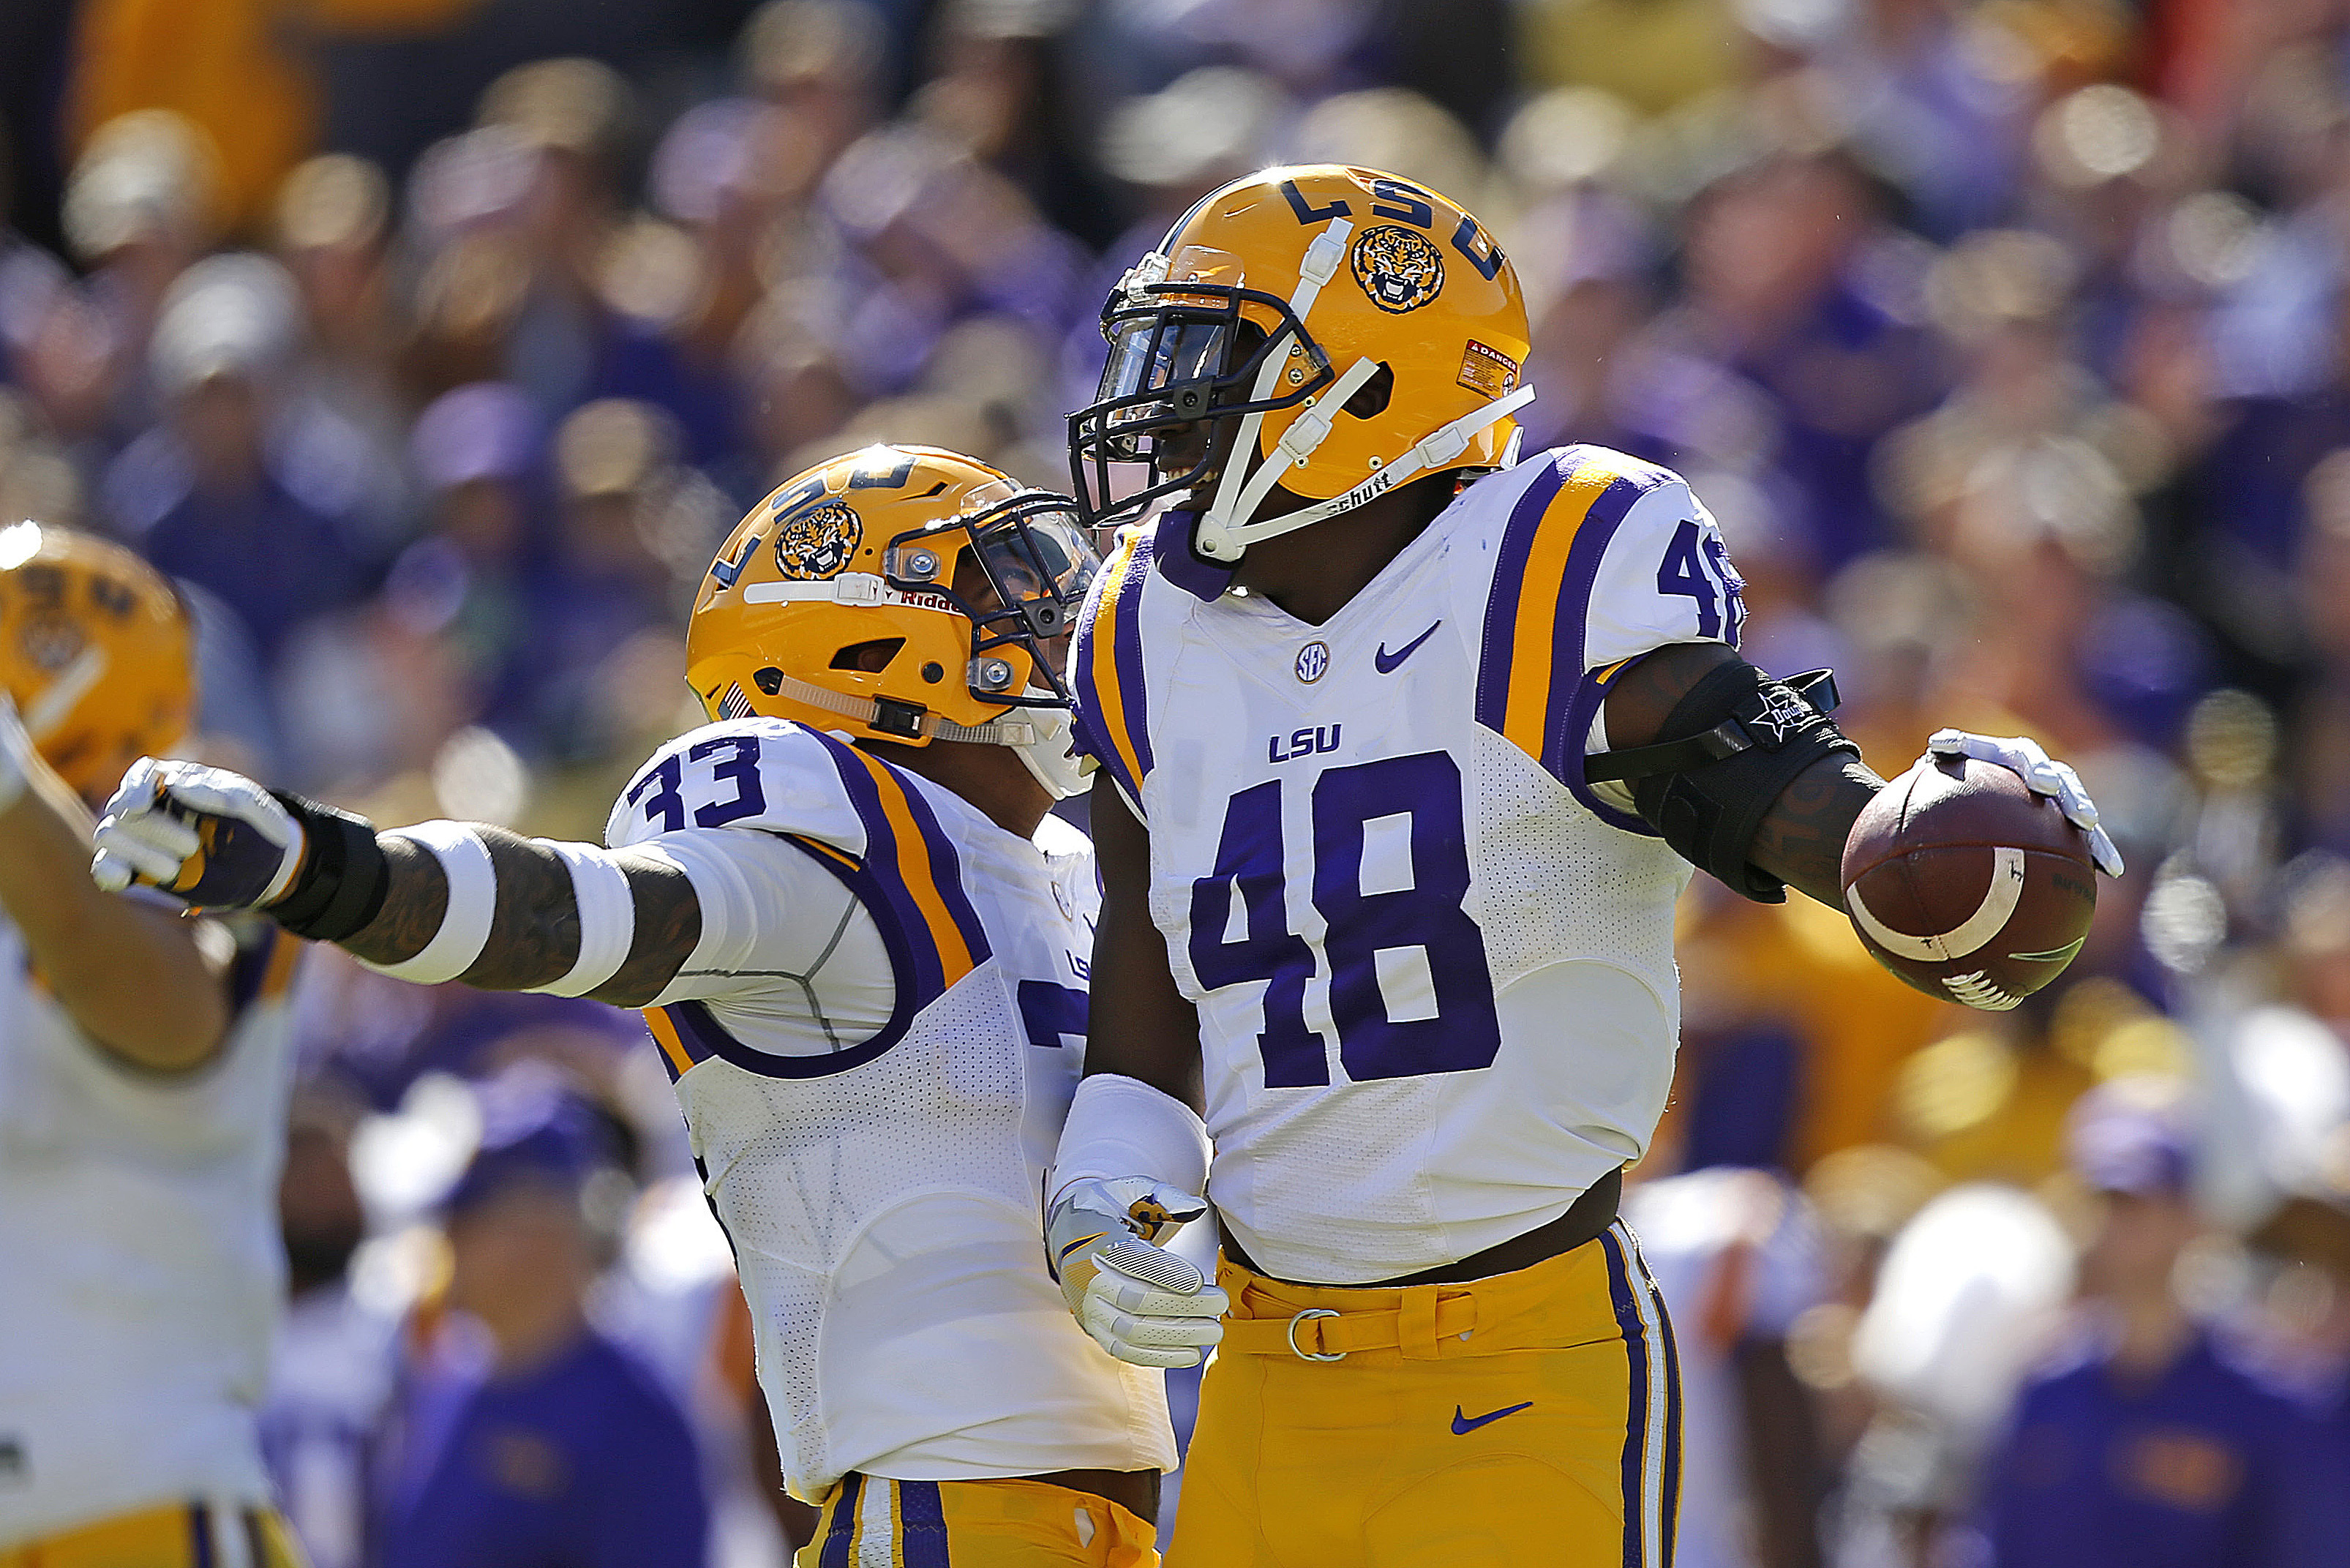 LSU linebacker Donnie Alexander (48) and fullback Trey Gallman (33) celebrate a defensive stop on a punt in the first half an NCAA college football game against Florida in Baton Rouge, La., Saturday, Nov. 19, 2016. (AP Photo/Gerald Herbert)